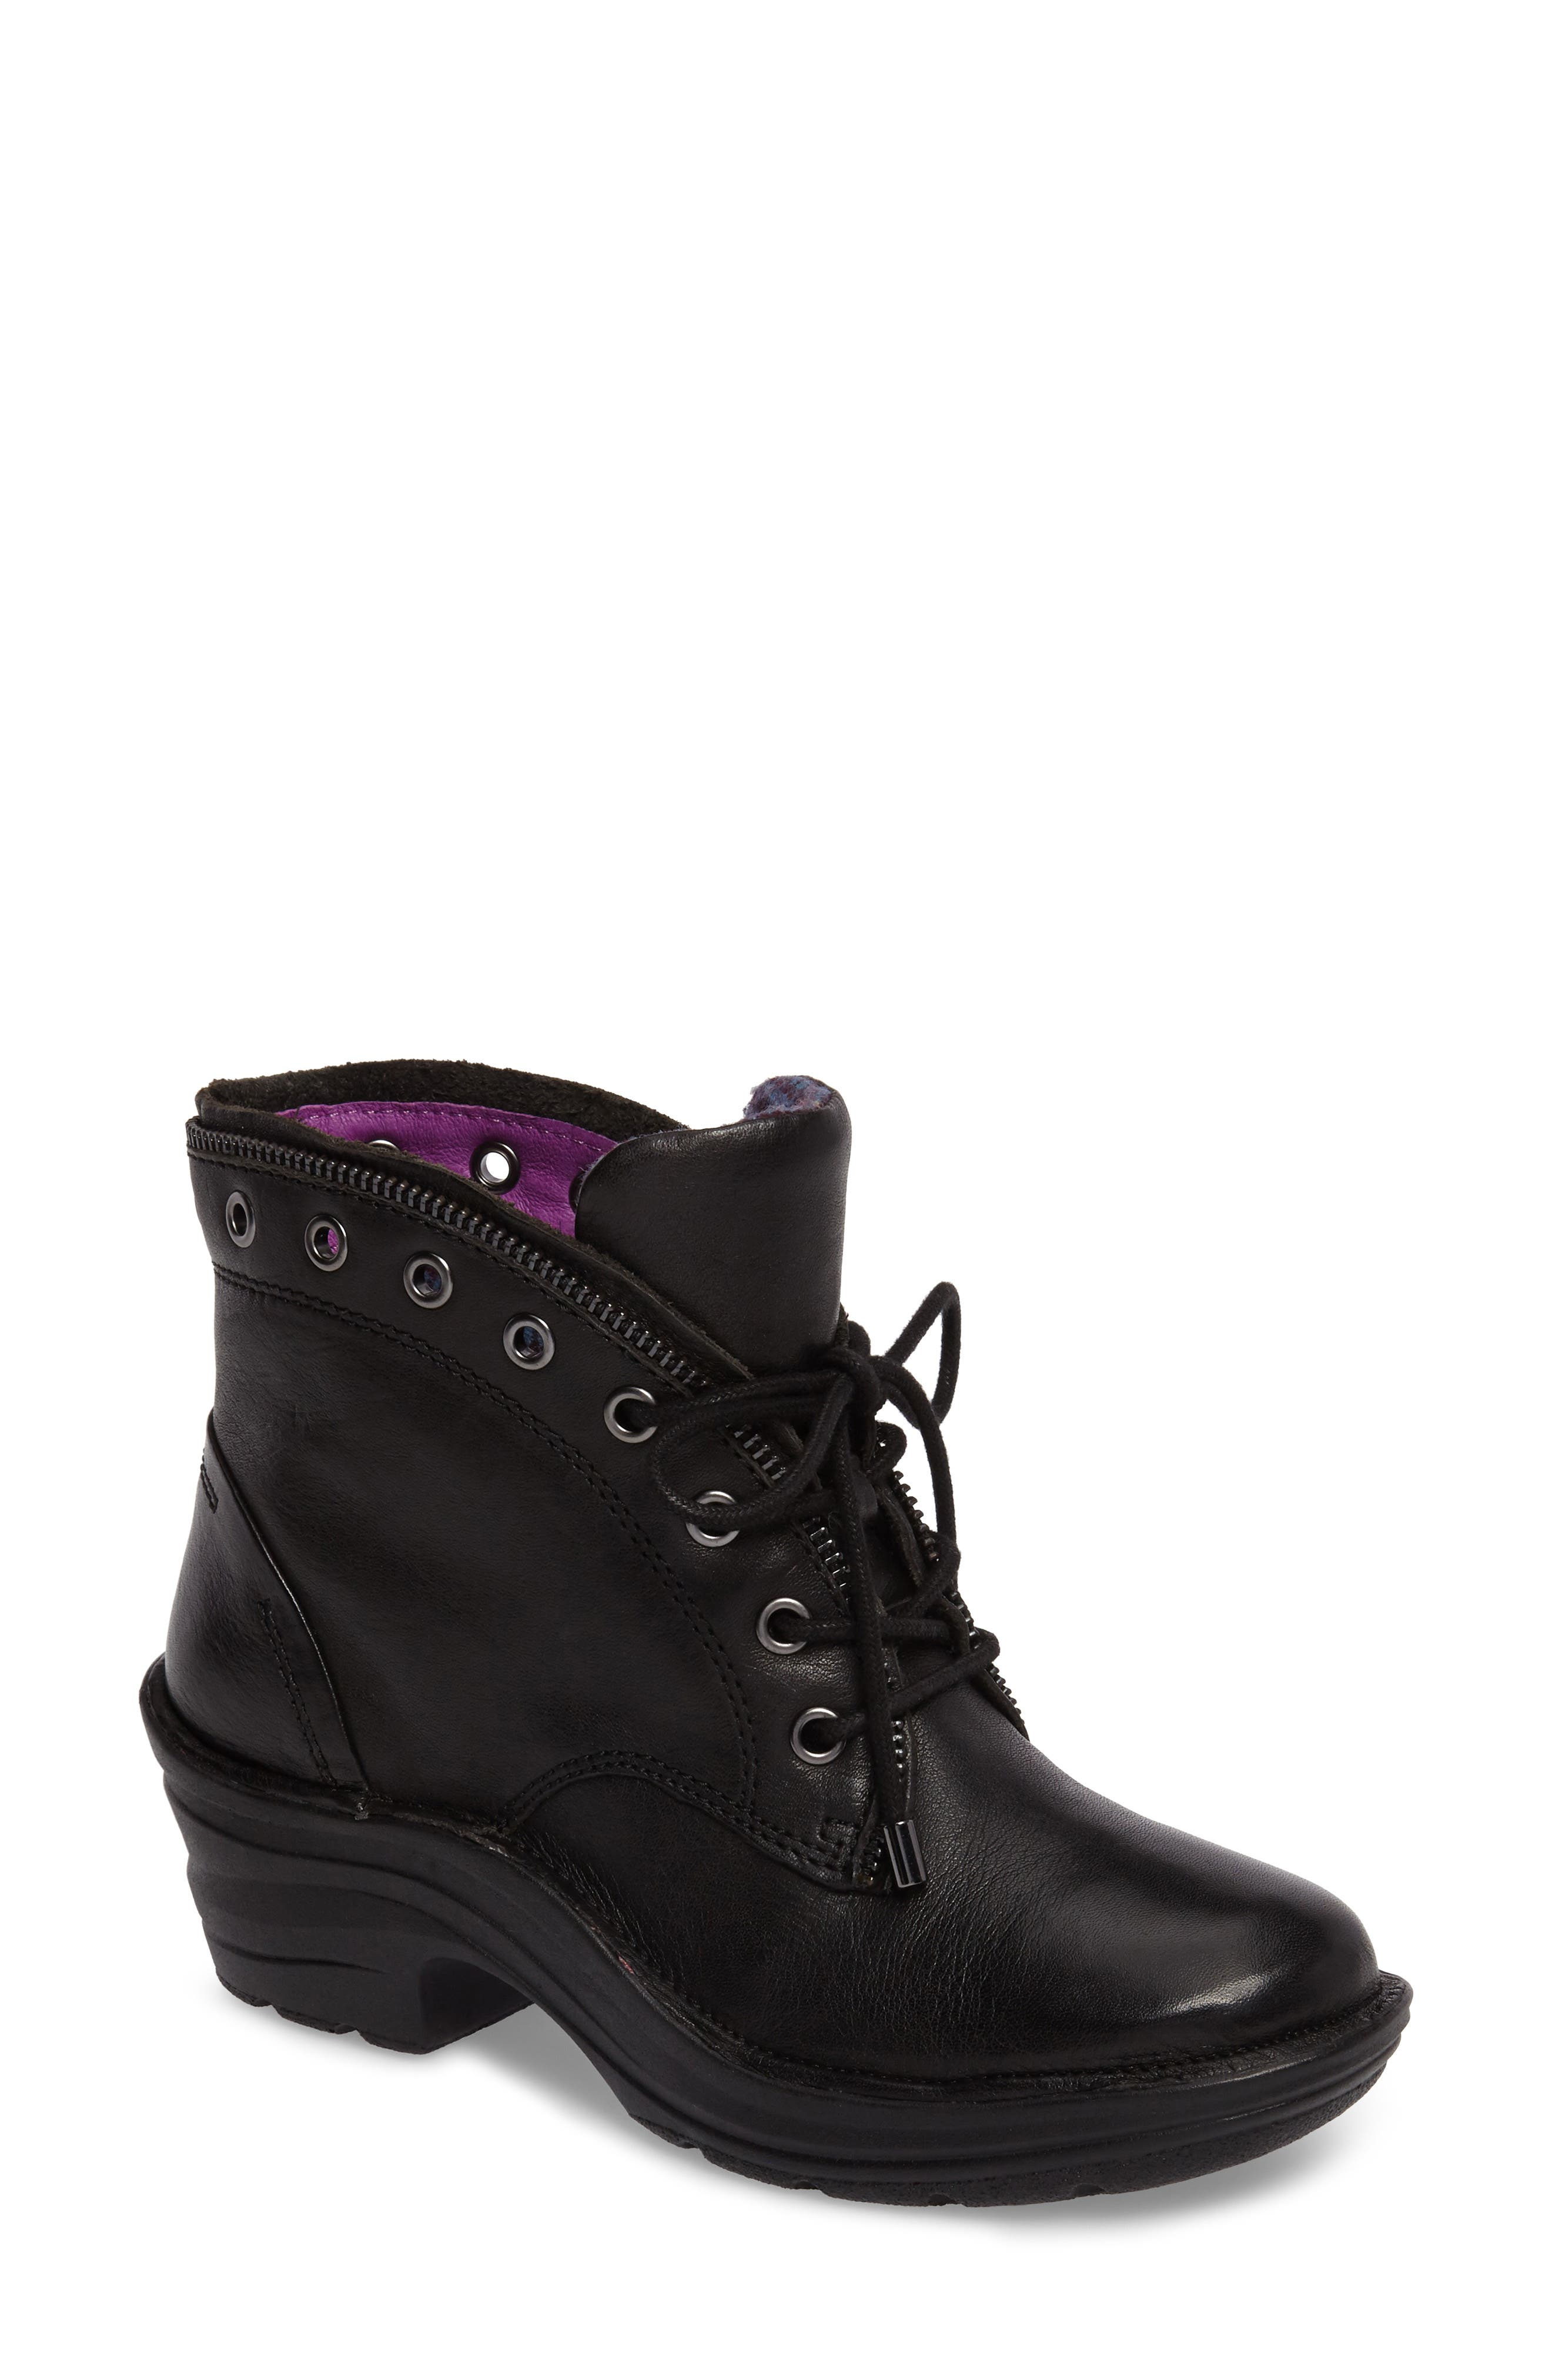 Rangely Boot,                         Main,                         color, 001